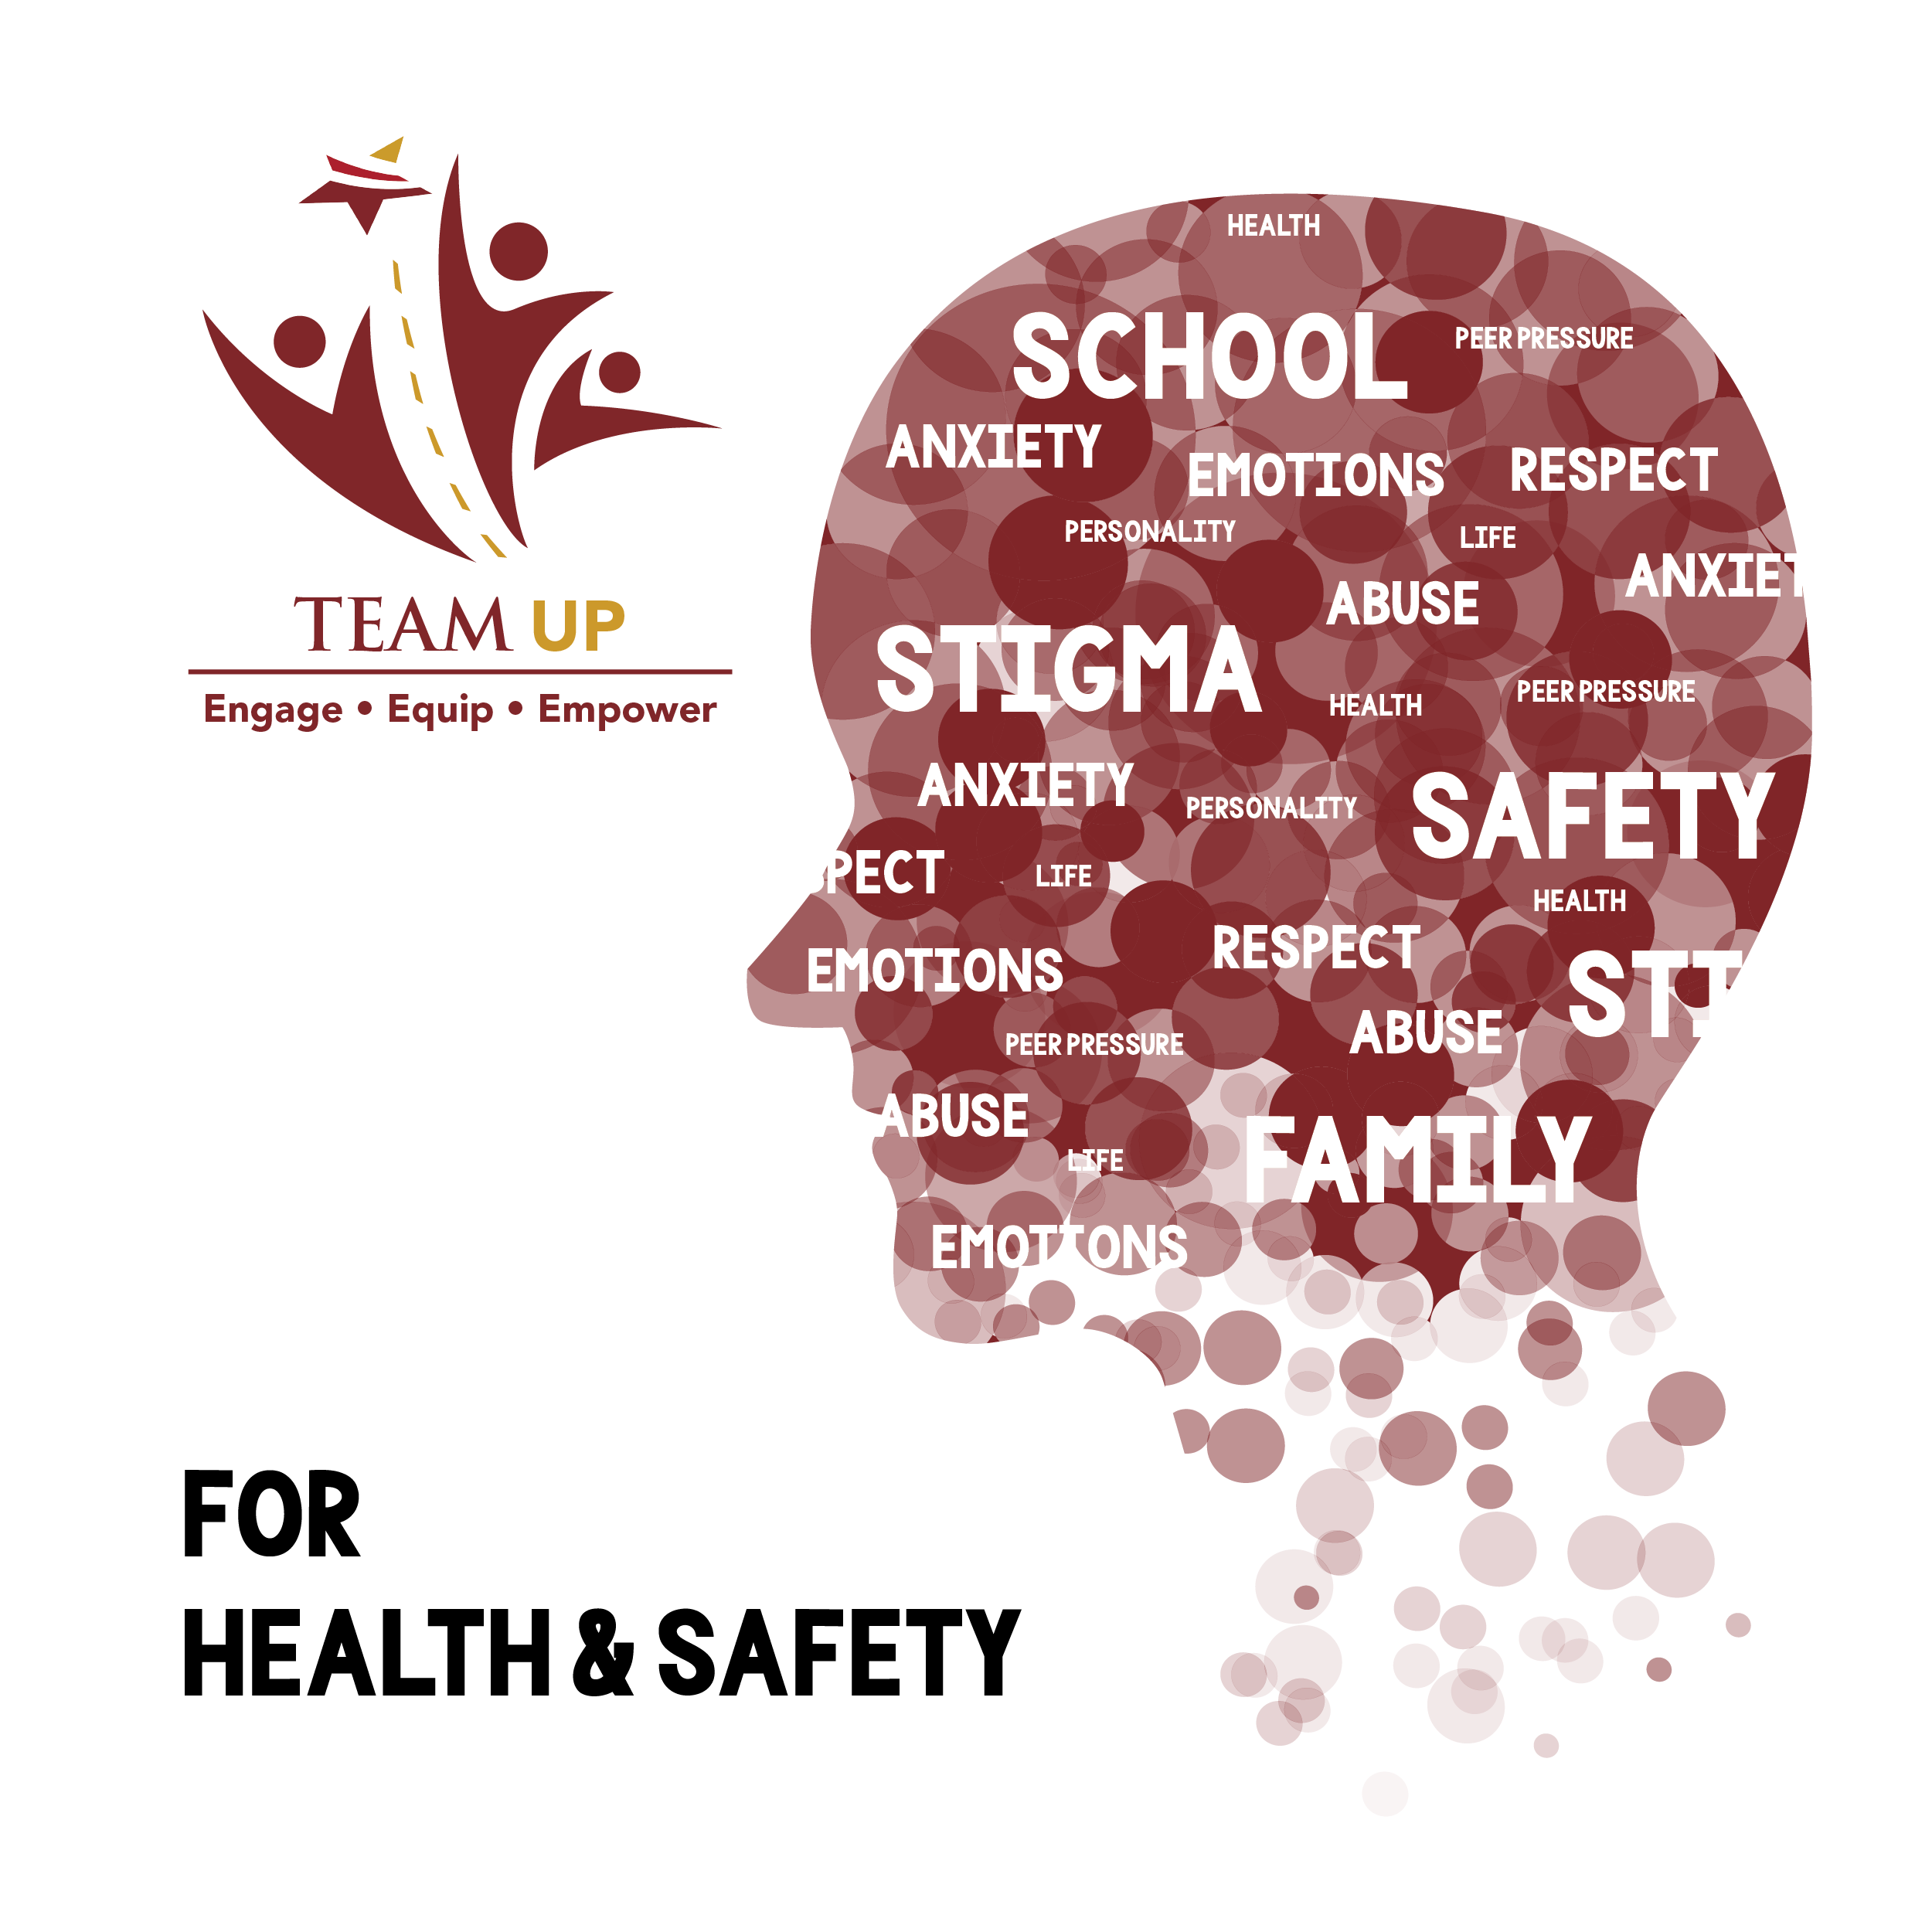 Magnolia ISD works to engage, equip and empower our students, staff, parents and community by providing free health and safety resources